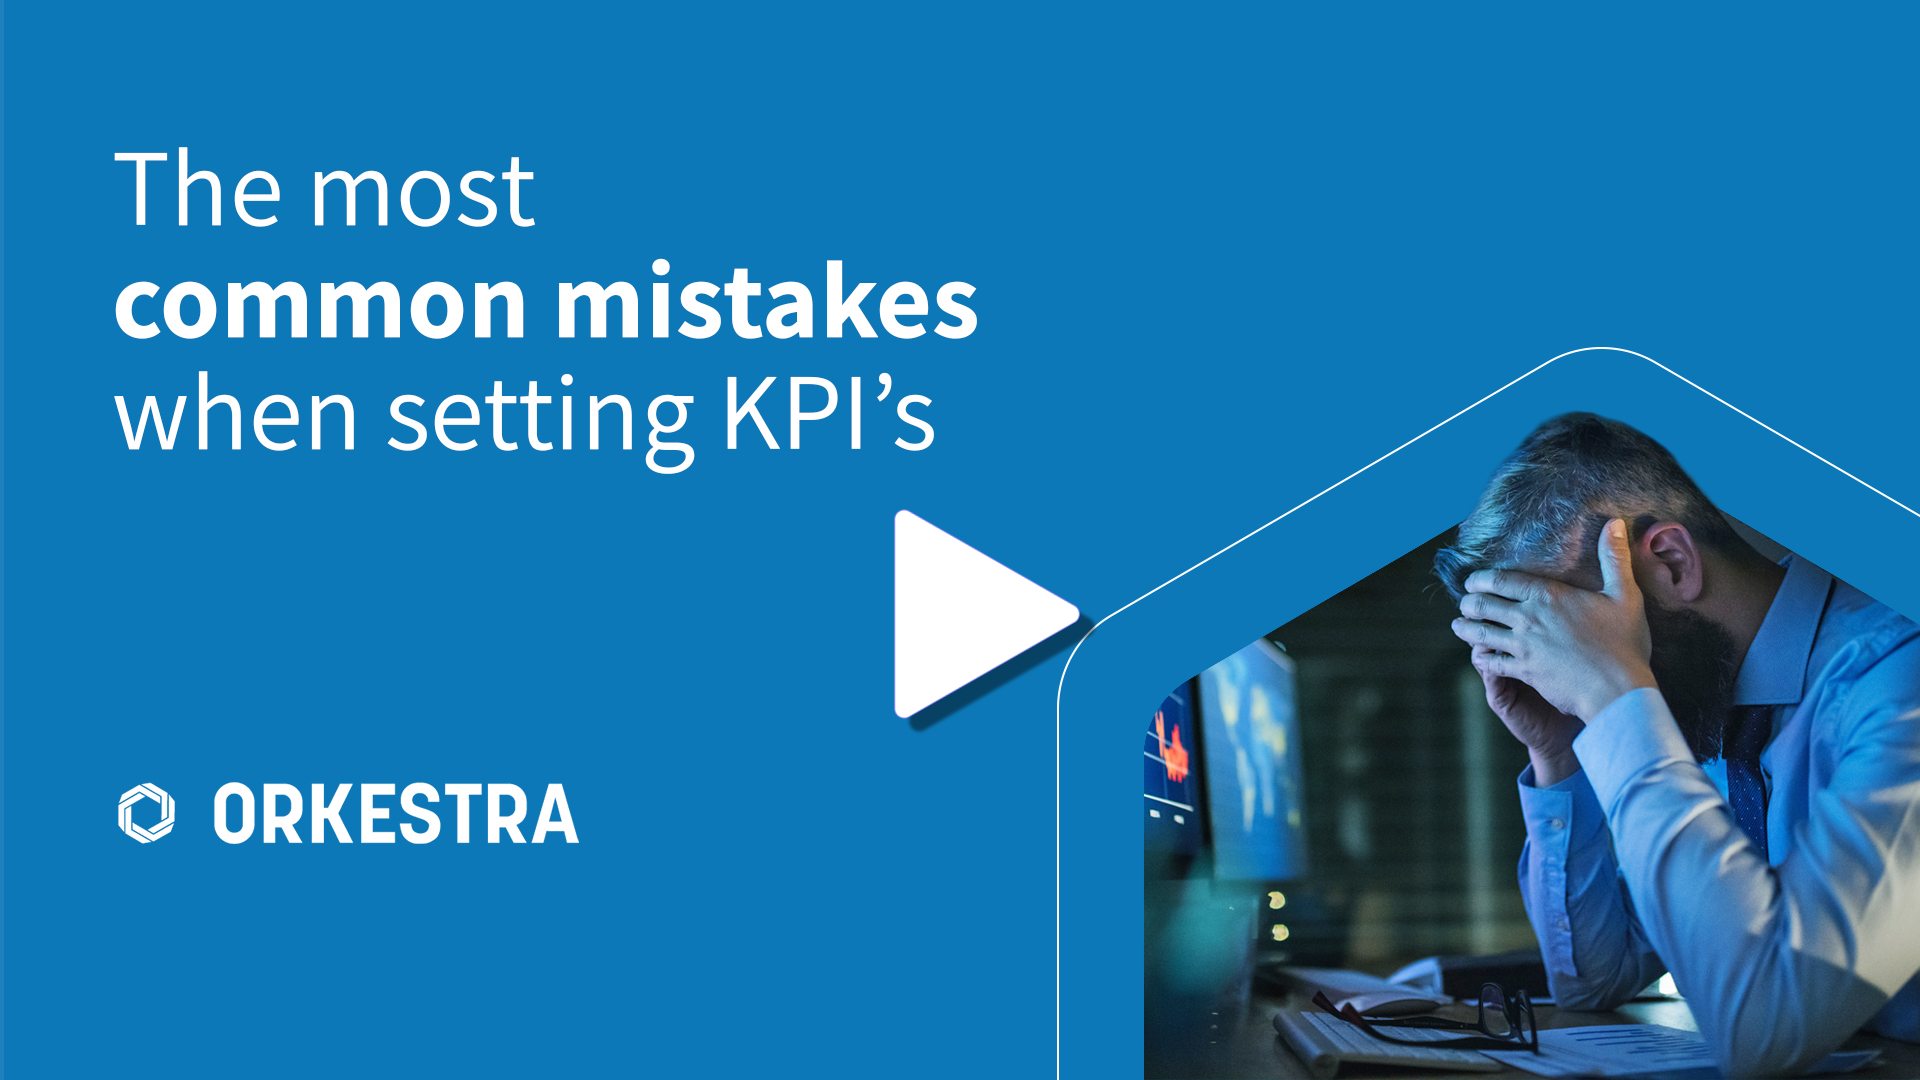 Understand what the most common mistakes are when setting KPI's to ensure you don't make the same ones.